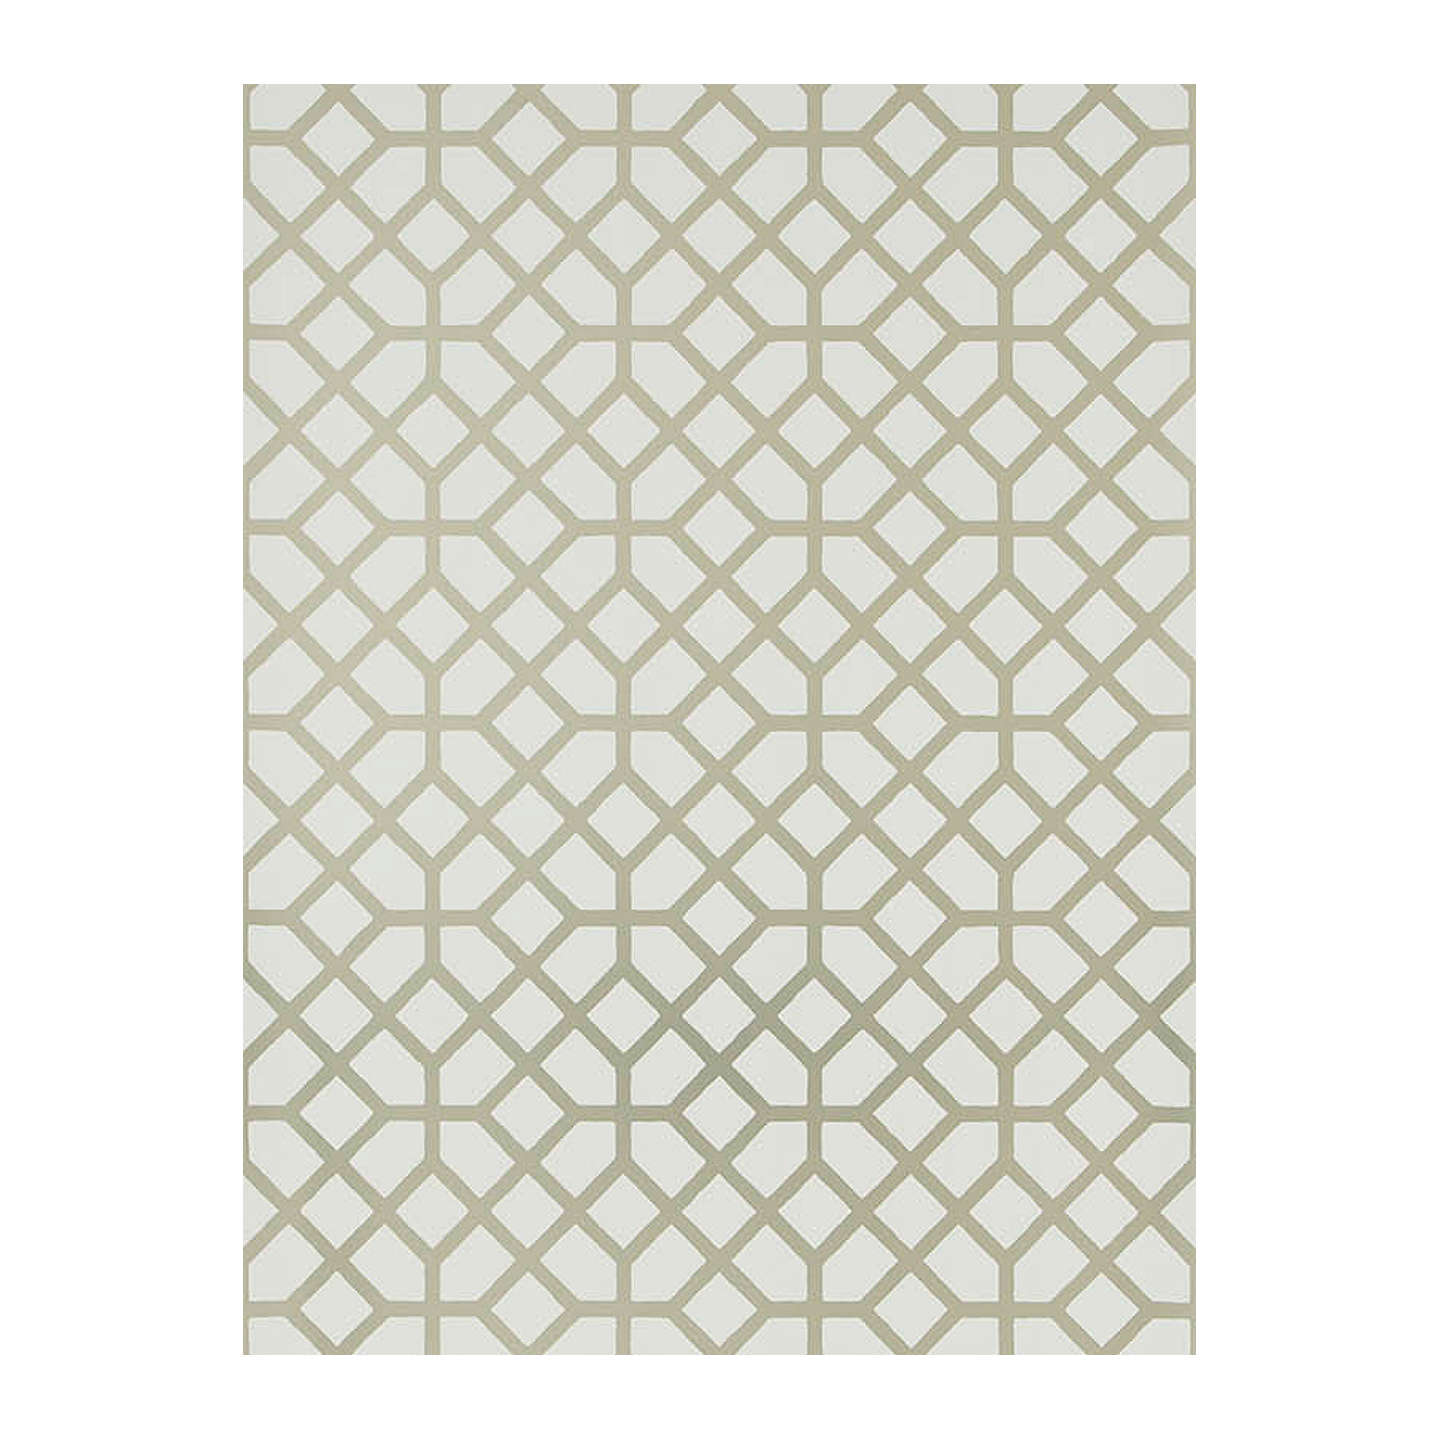 BuyDesigners Guild Pisani Wallpaper, Silver, P603/01 Online at johnlewis.com